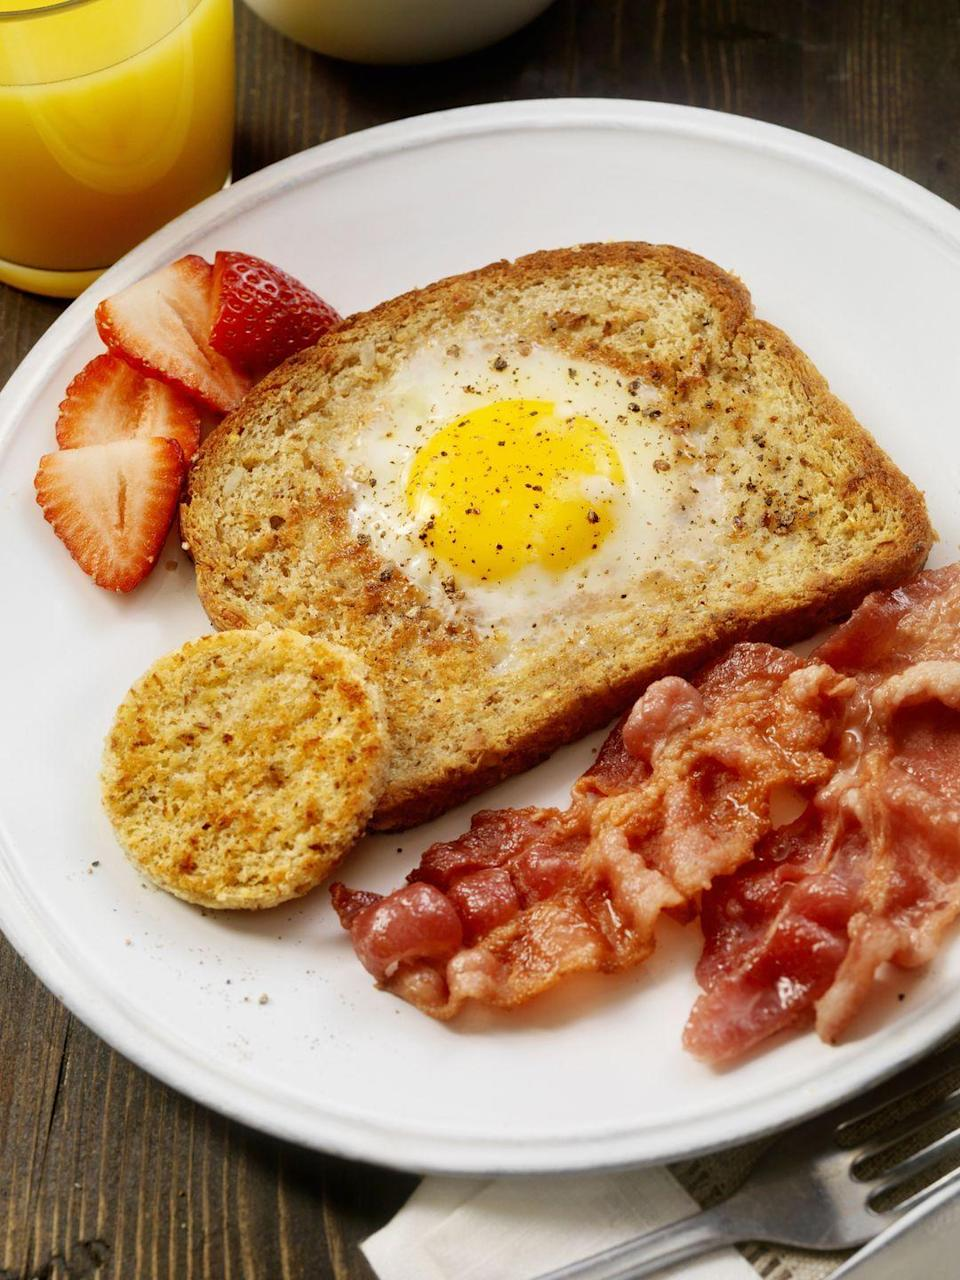 """<p>This hole-in-one beauty begins with a thick slice of buttered brioche bread. The freshest eggs will have centered, golden yolks and the best flavor. Pair with bacon or roasted tomatoes. </p><p><strong><a href=""""https://www.countryliving.com/food-drinks/recipes/a843/egg-in-the-hole-19/"""" rel=""""nofollow noopener"""" target=""""_blank"""" data-ylk=""""slk:Get the recipe"""" class=""""link rapid-noclick-resp"""">Get the recipe</a>.</strong><br></p>"""